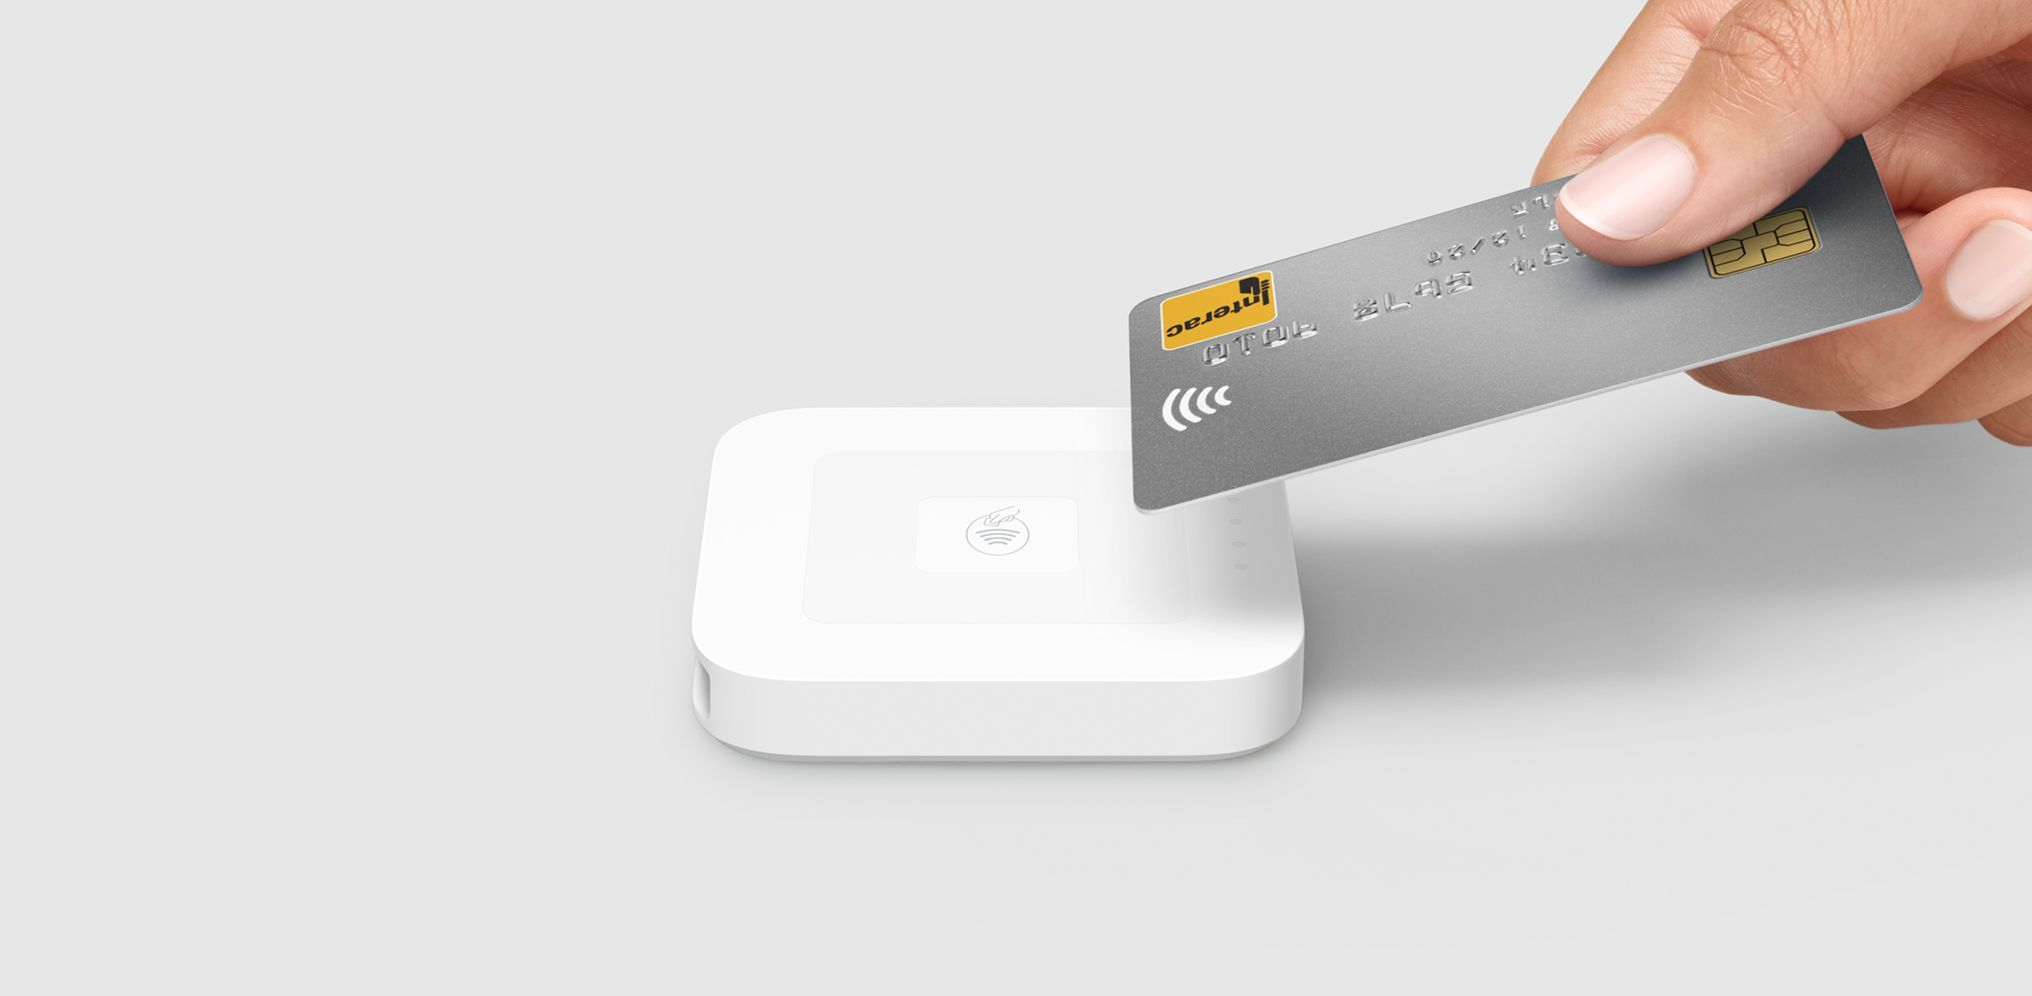 Main tenant un téléphone affichant Apple Pay et un Square Reader